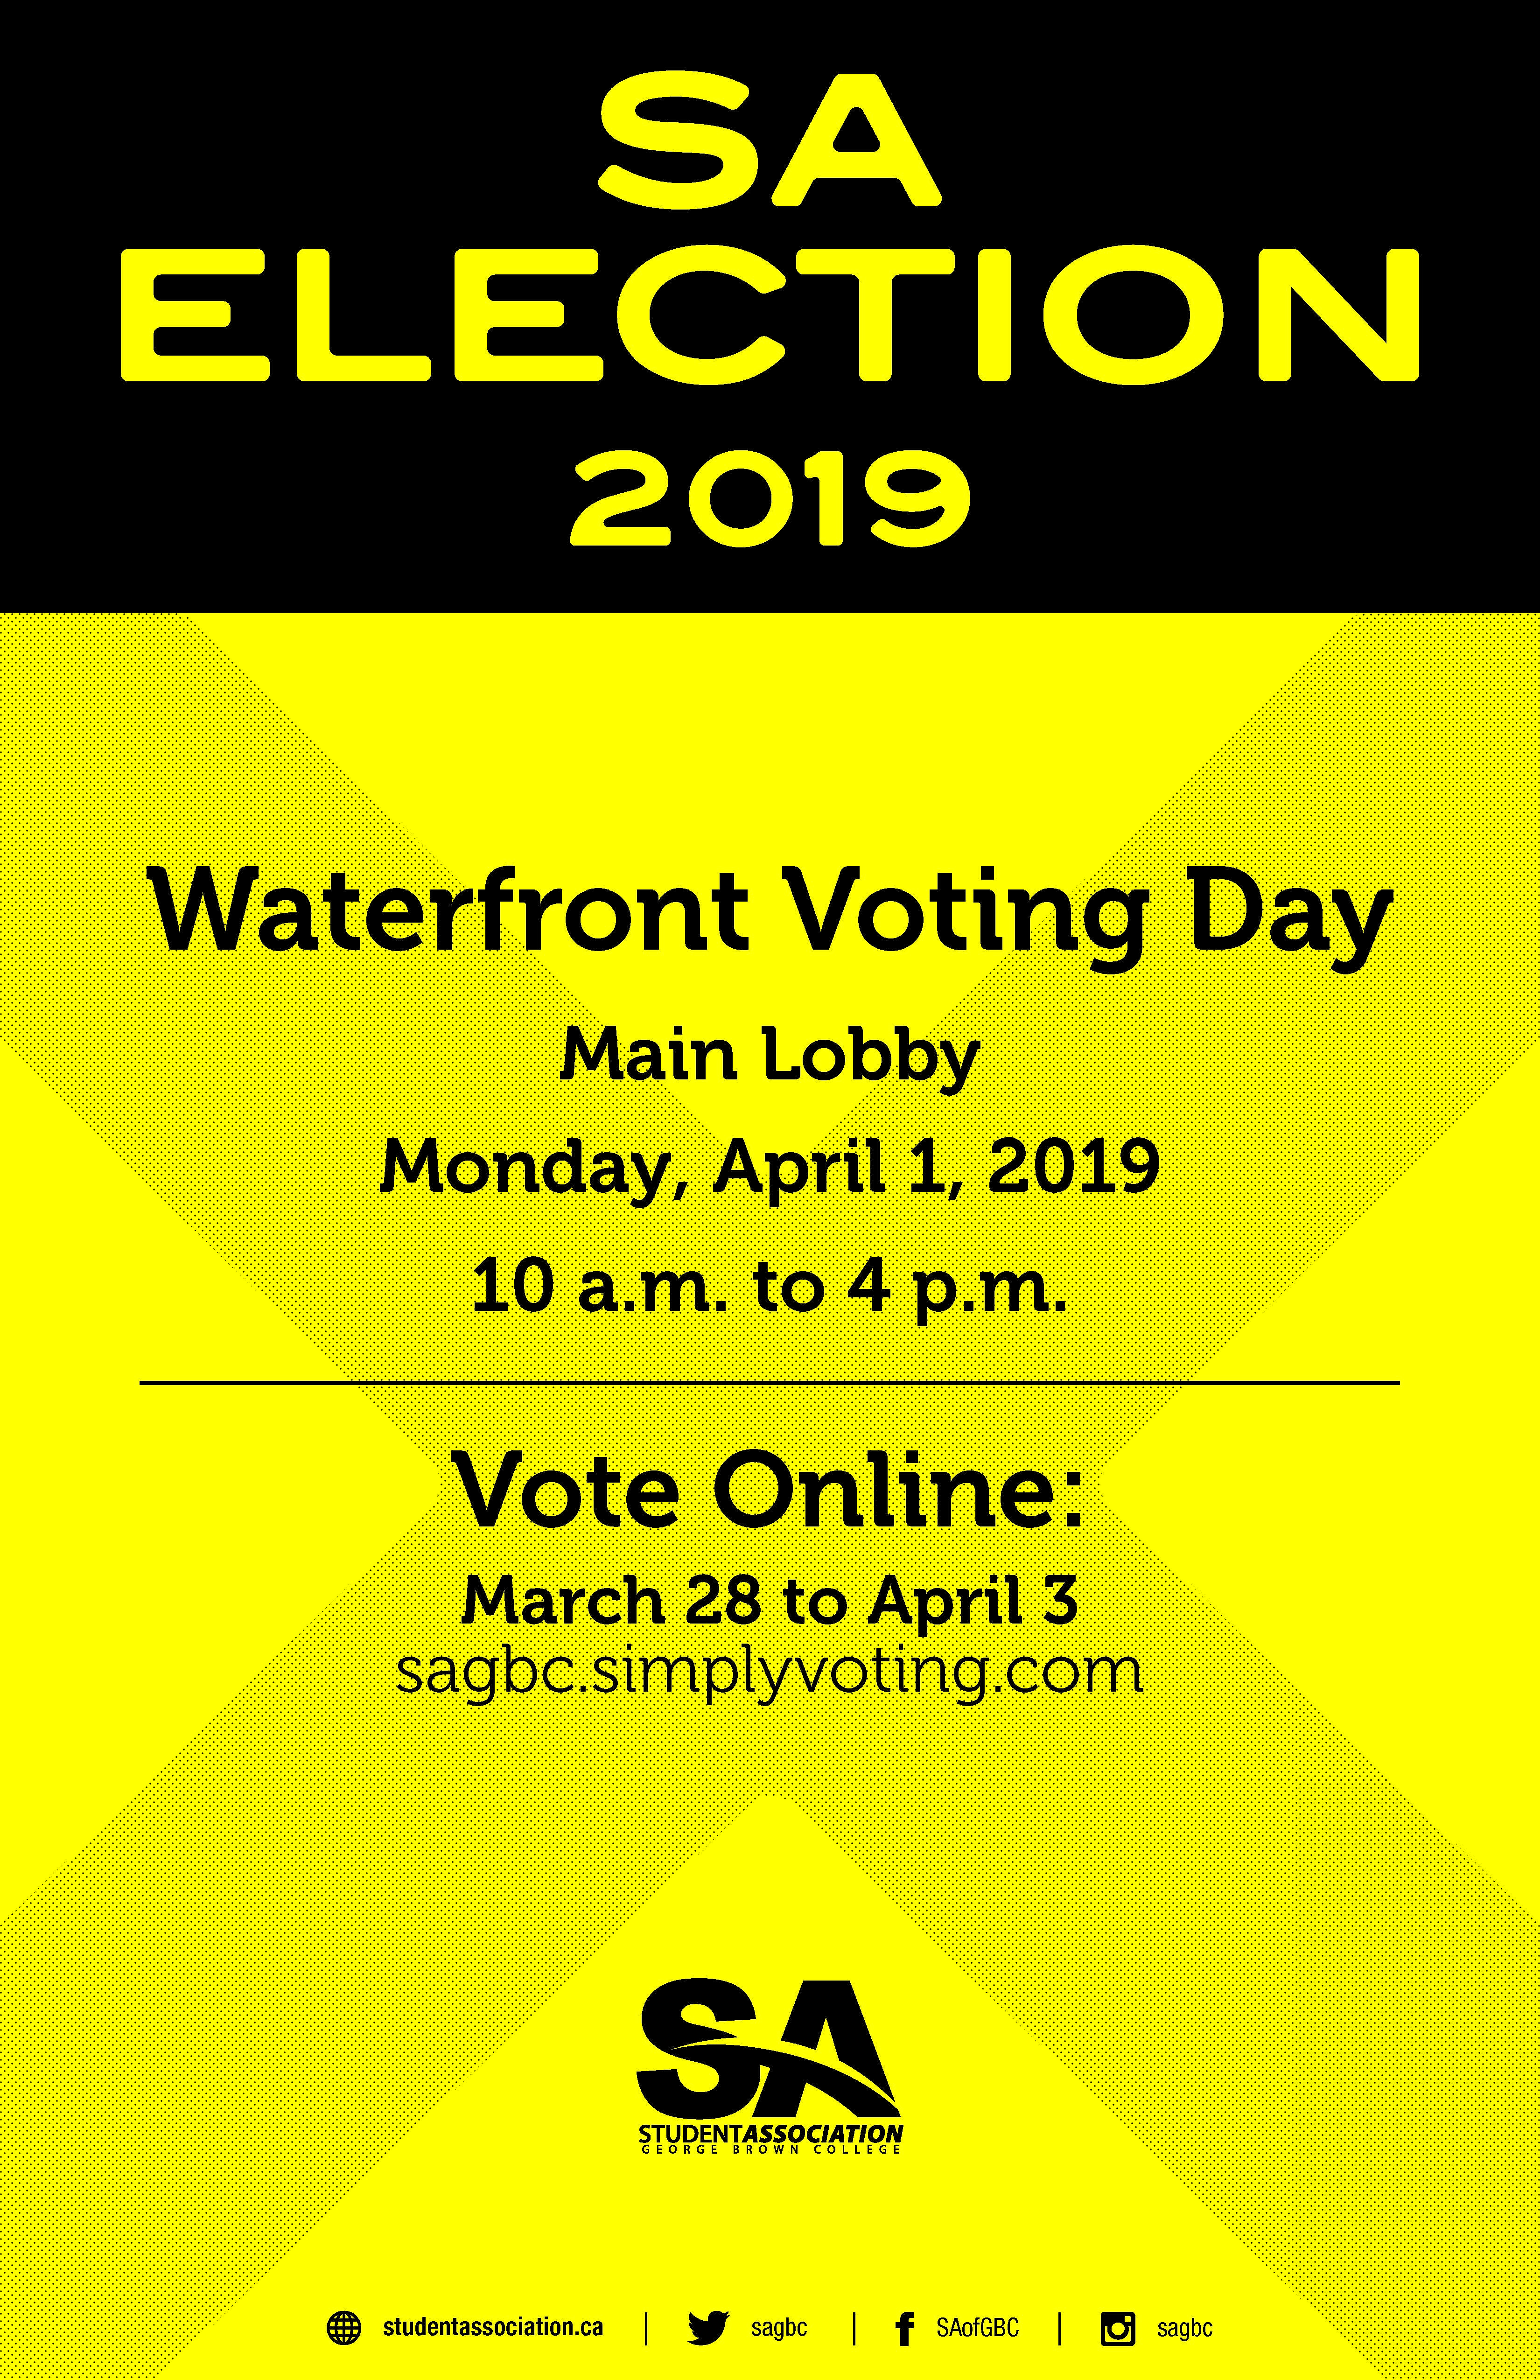 Vote in the Student Association elections!  Waterfront Voting Day Monday, April 1  10 a.m to 4 p.m. Waterfront campus, Main Lobby 51 Dockside Dr.   Or vote online anytime between March 28 and April 3 at: https://sagbc.simplyvoting.com/